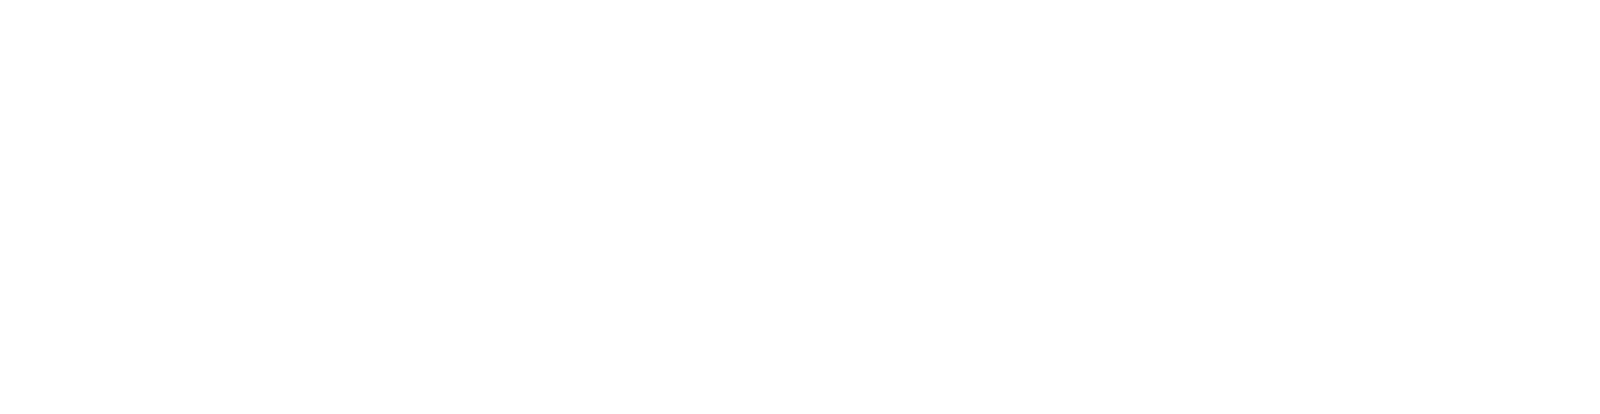 Seattle stylistic text